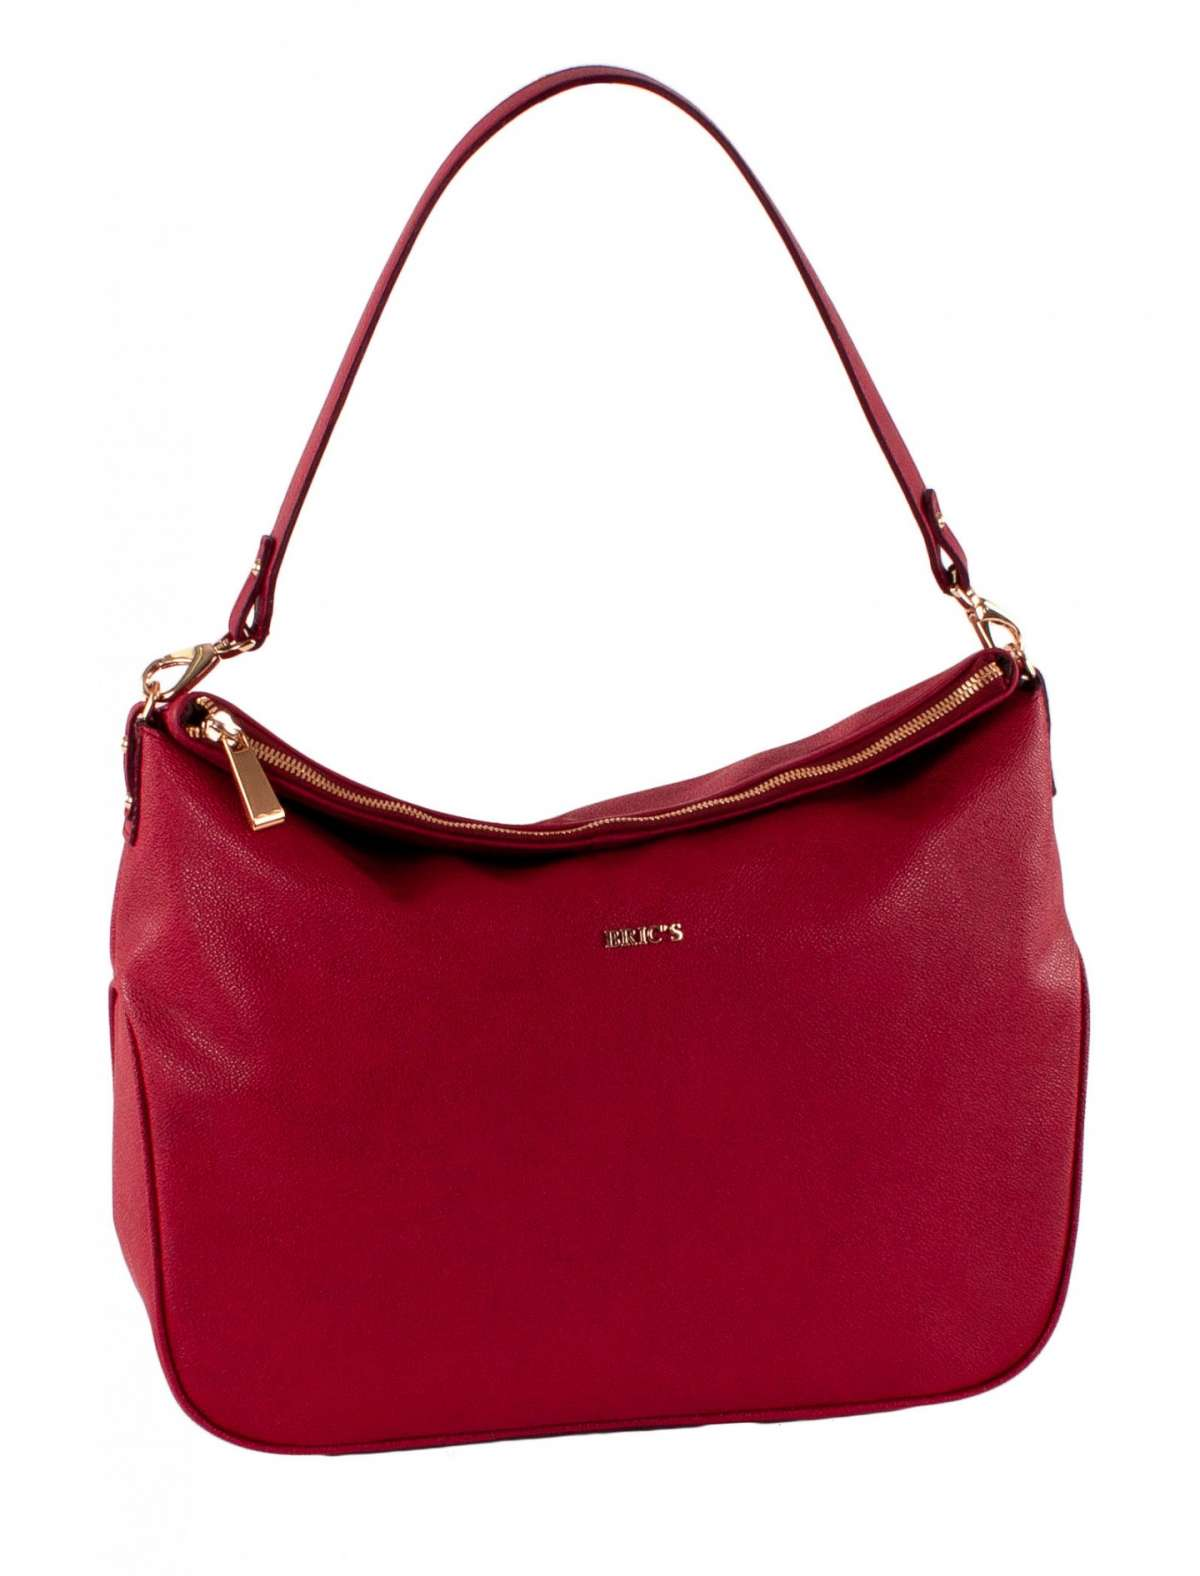 Shoulder bag rossa